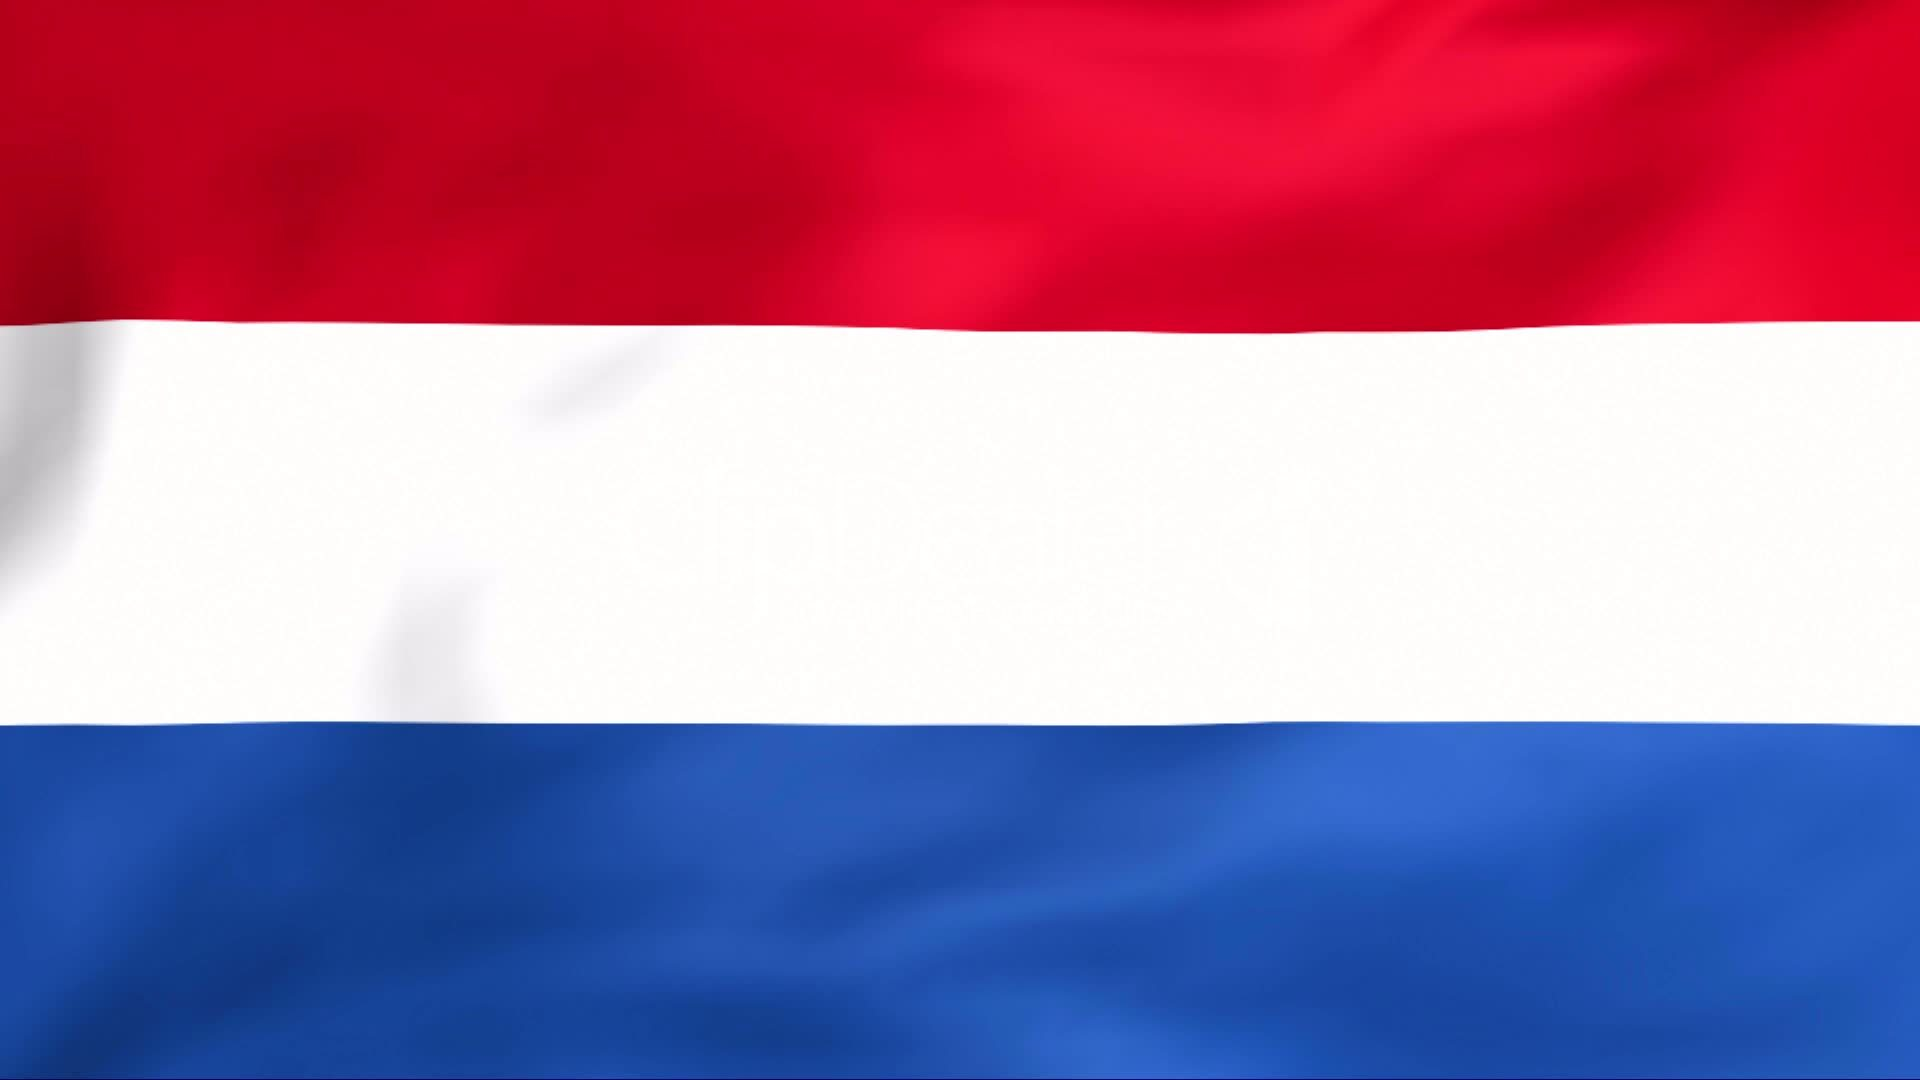 Flag of the Netherlands - Wikipedia